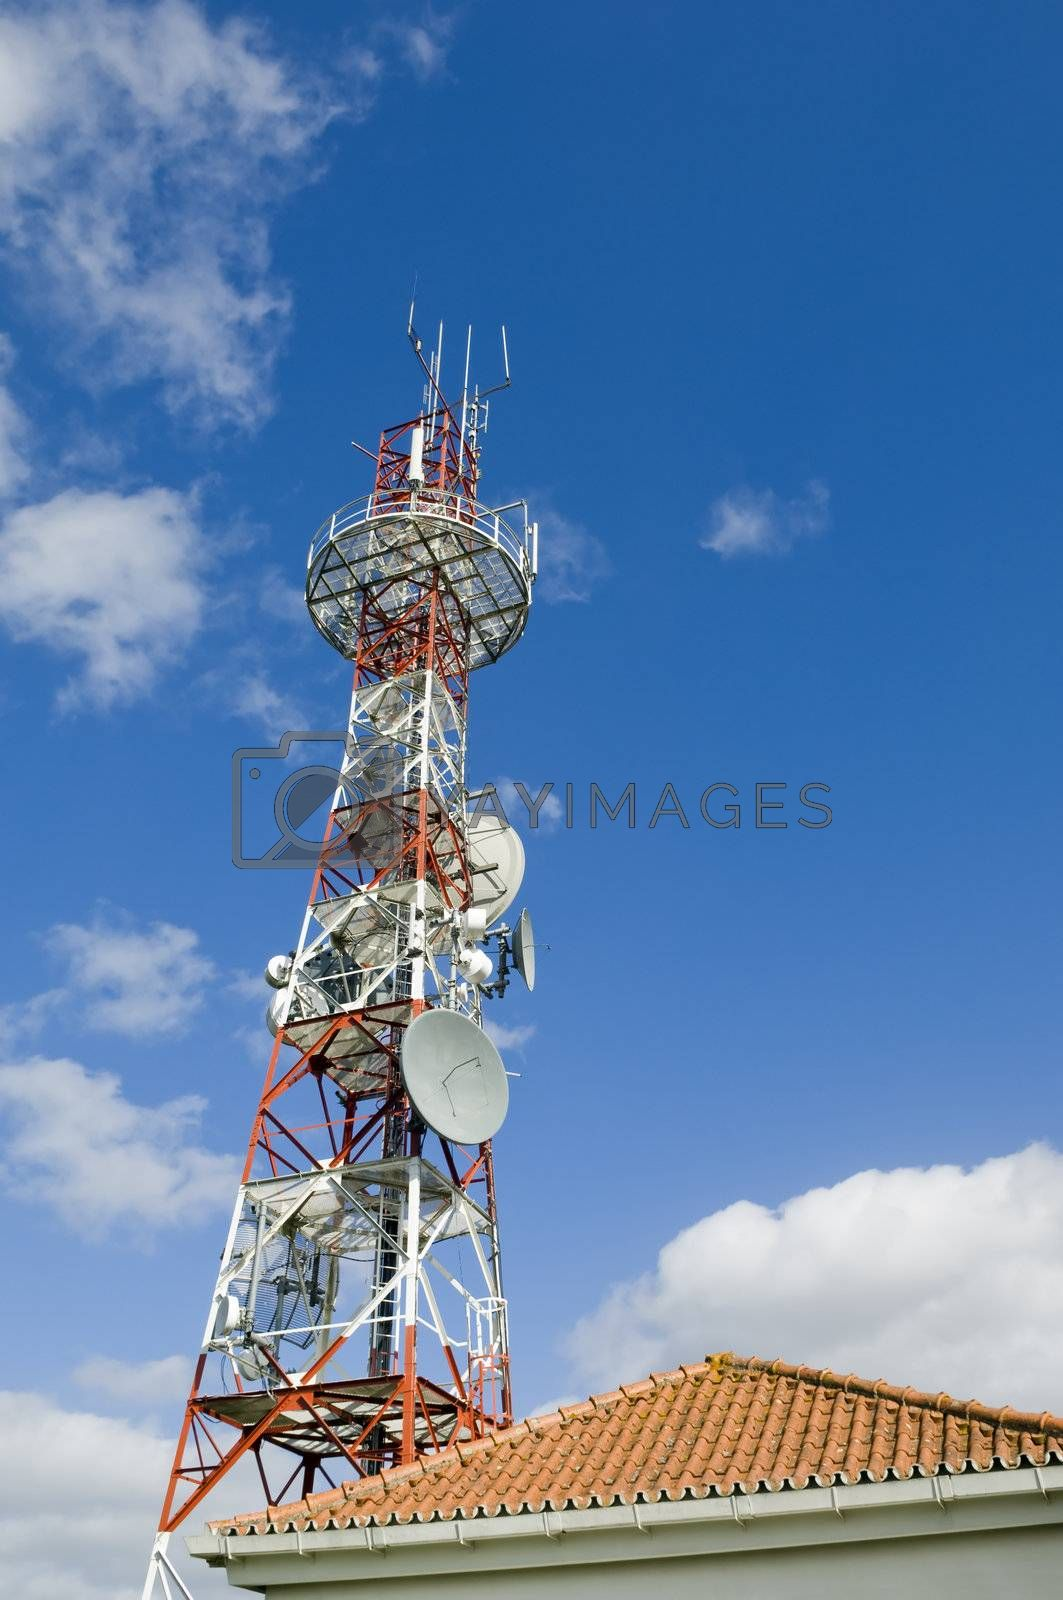 Radio communications station and tower with various types of antennas